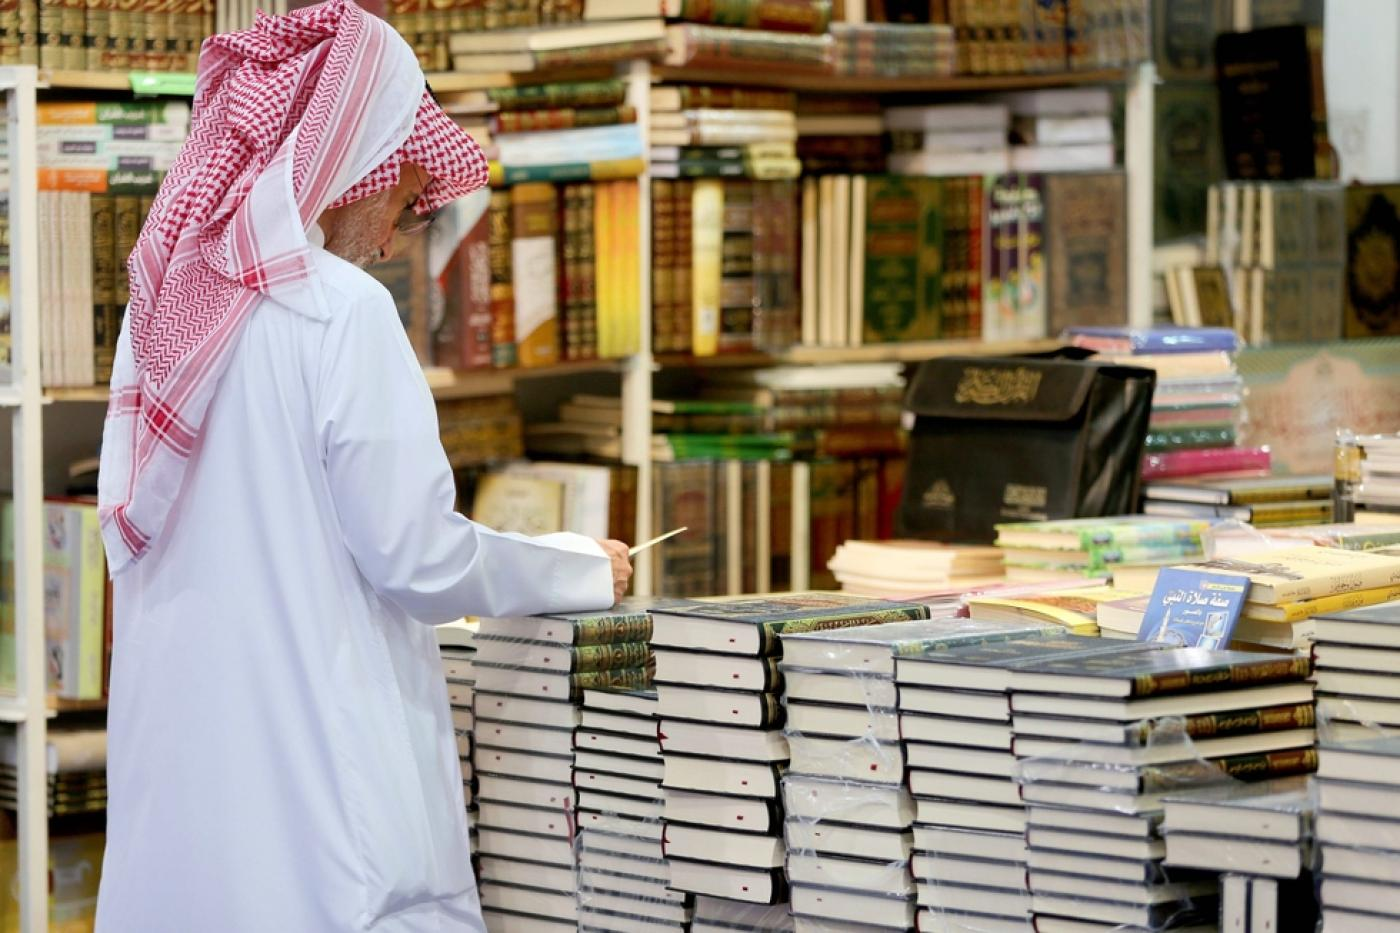 Calls for protest in Kuwait as banned book list reveals extent of